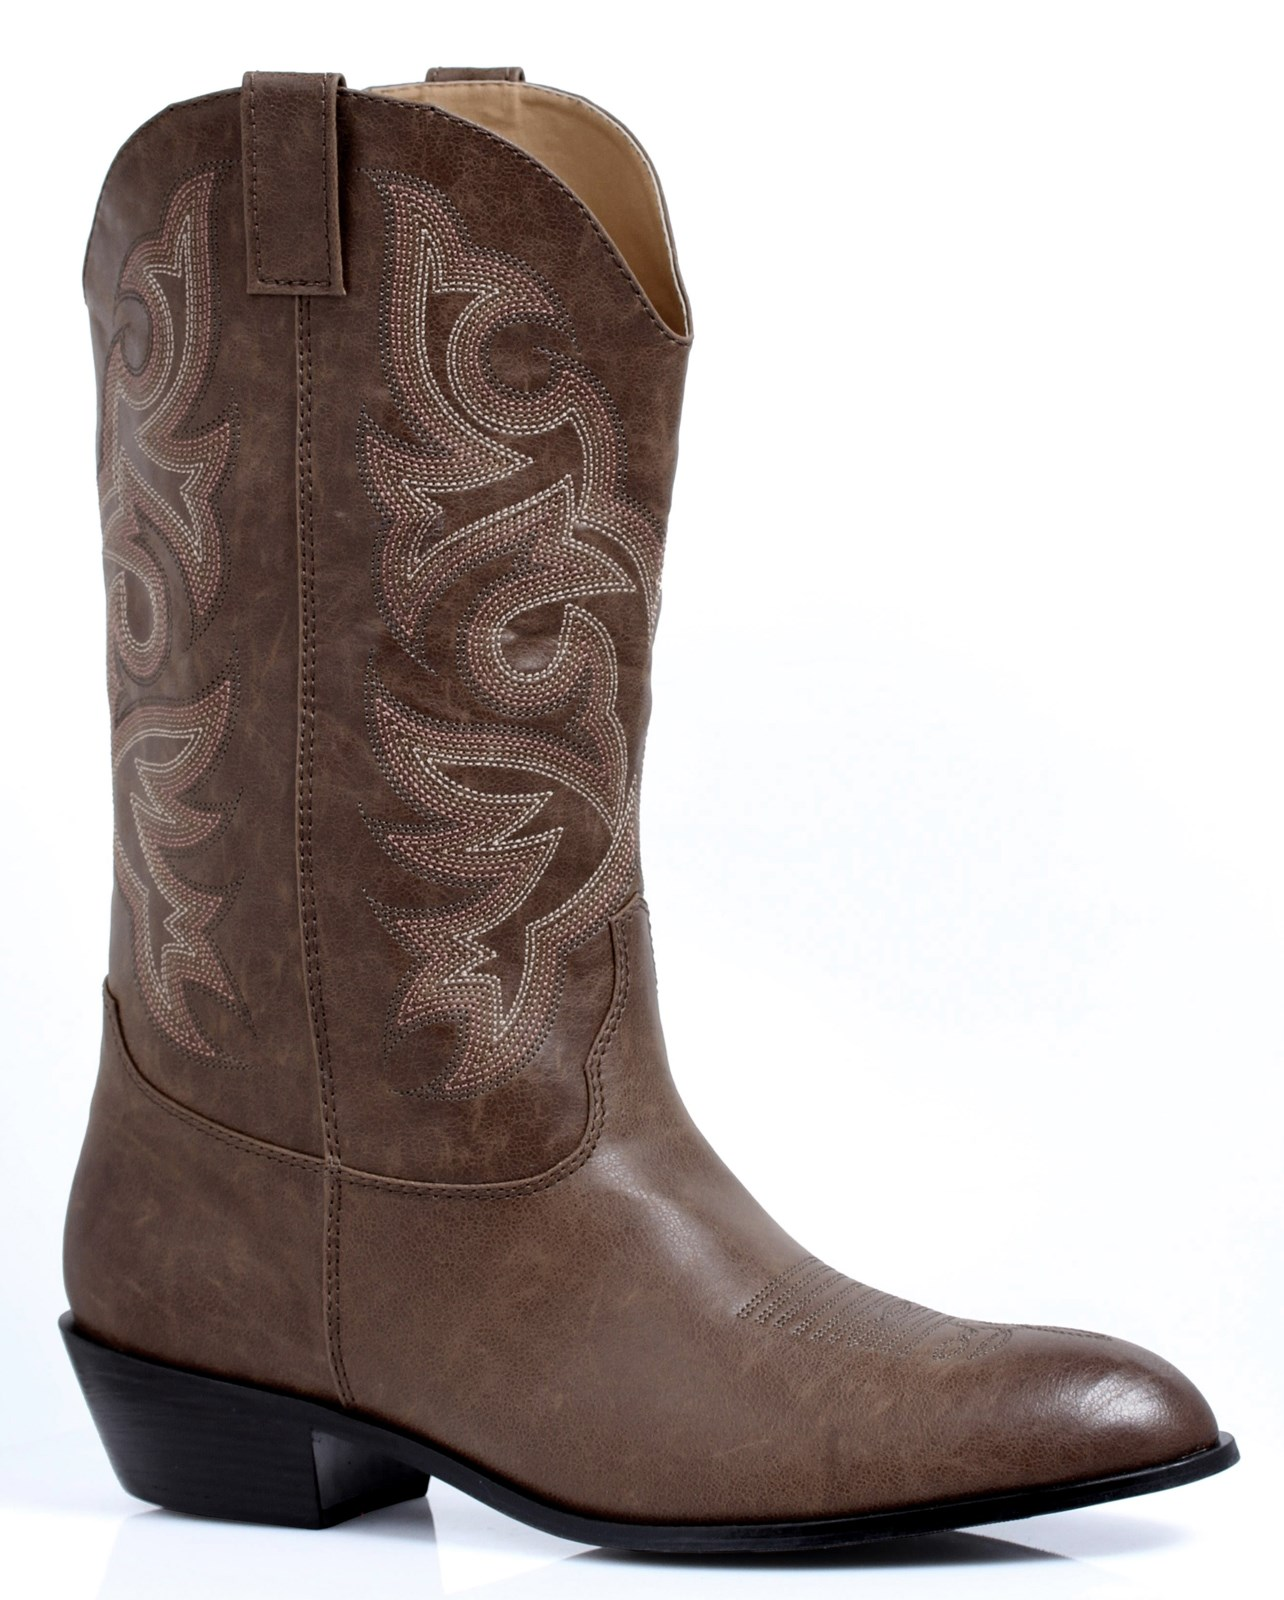 Image of Western Cowboy (Brown) Male Adult Boots